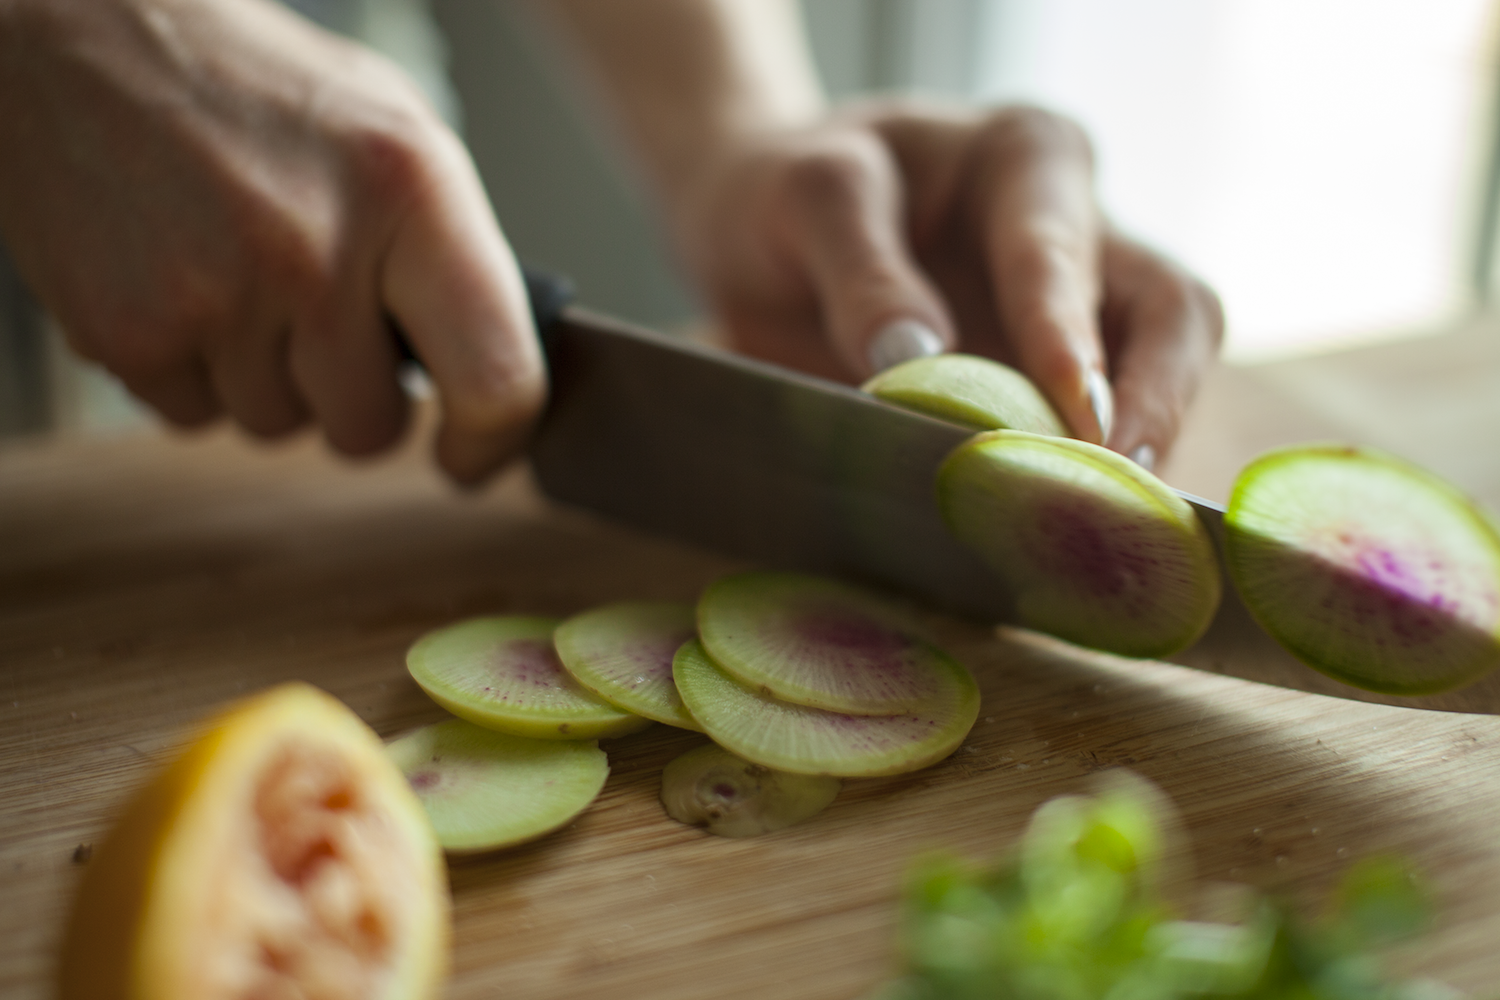 Lee thinly slices a watermelon radish